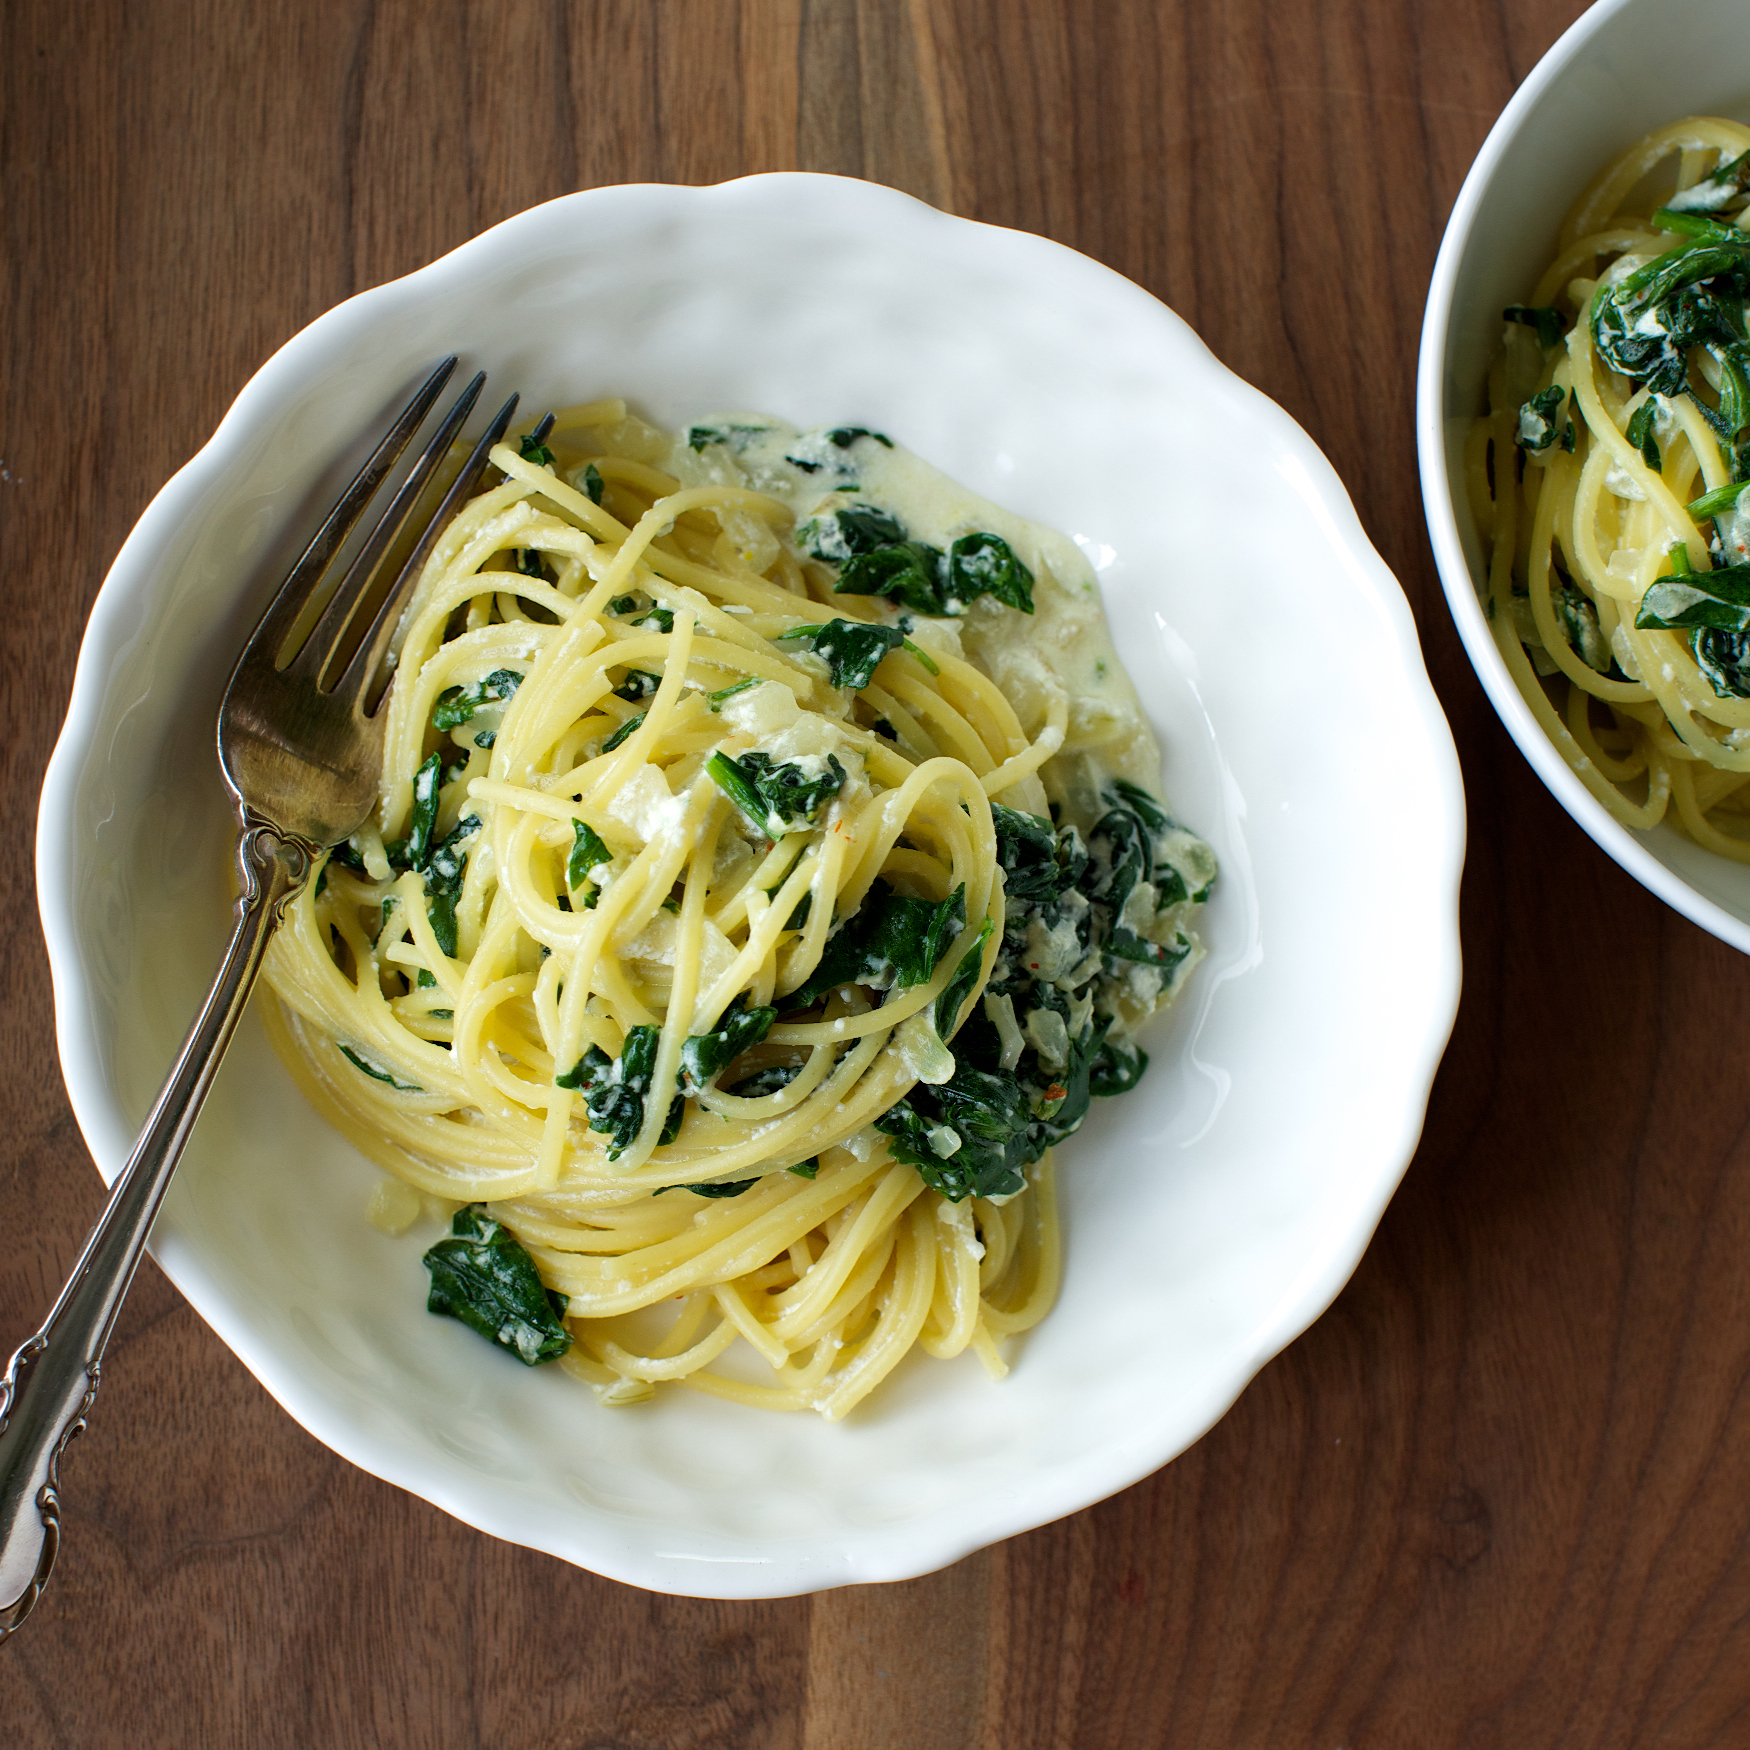 201408-r-spaghetti-with-spinach-and-ricotta.jpg